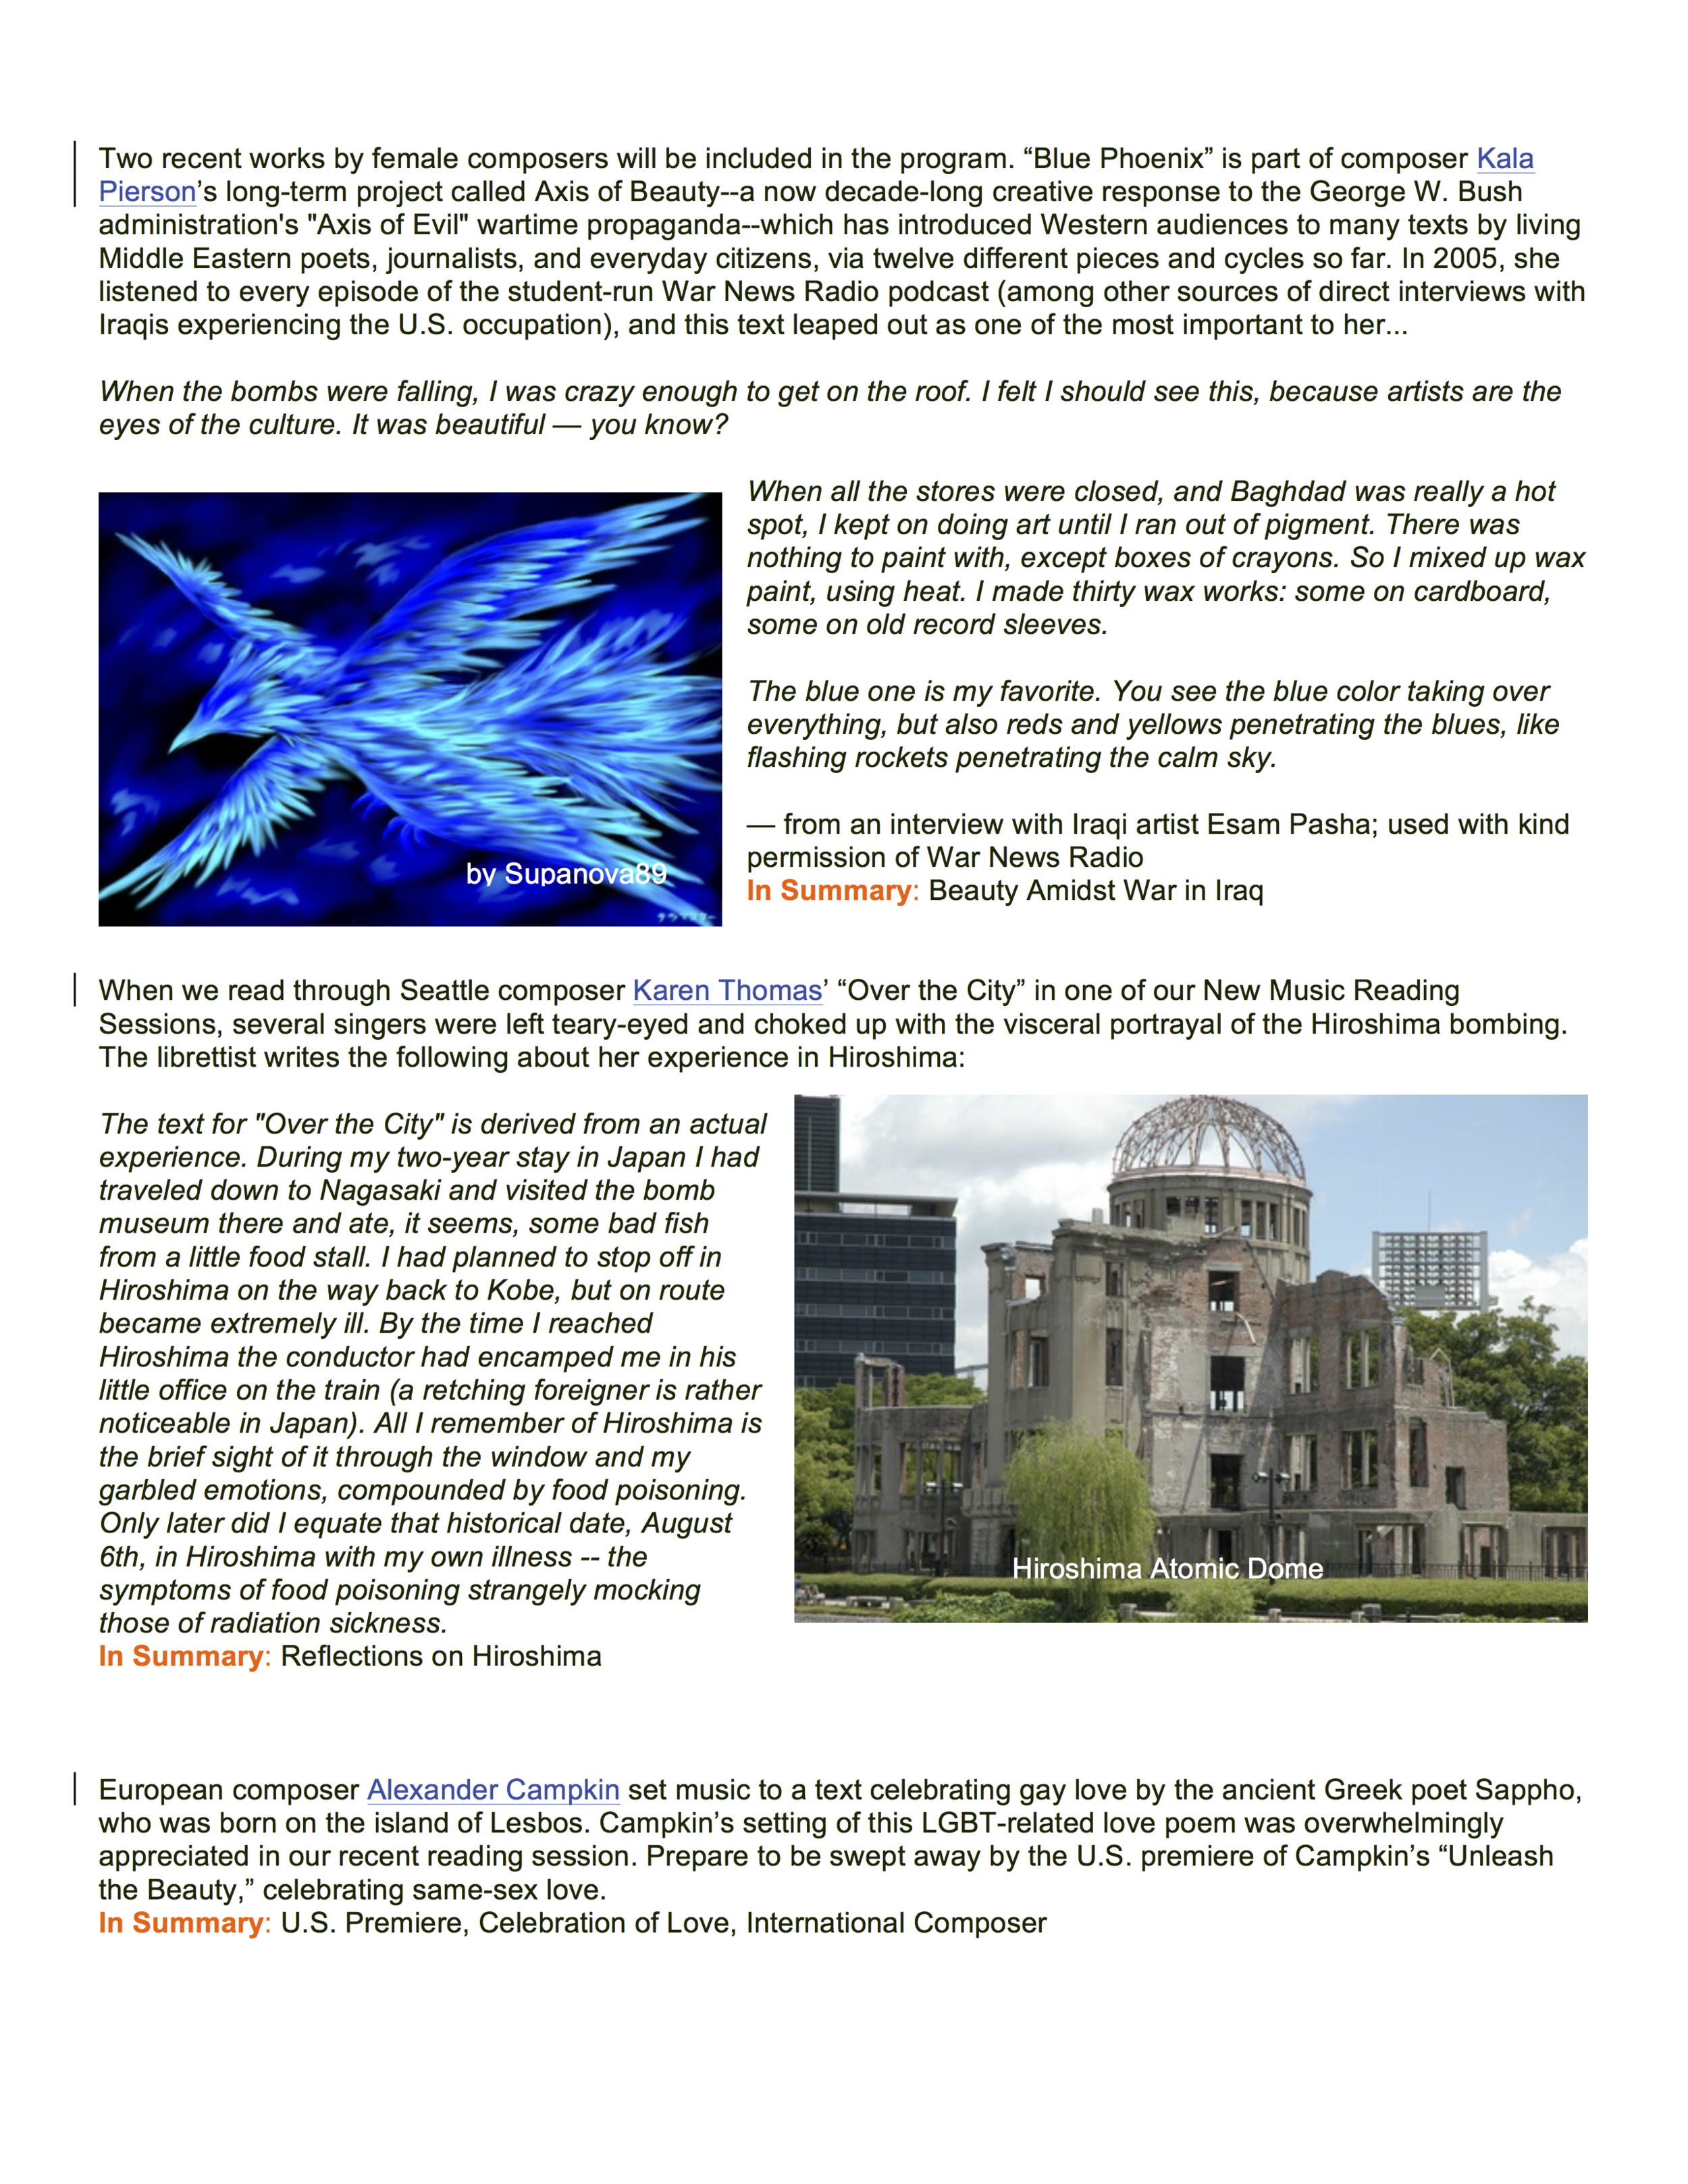 Empowering Silenced Voices Project Details, #2.png